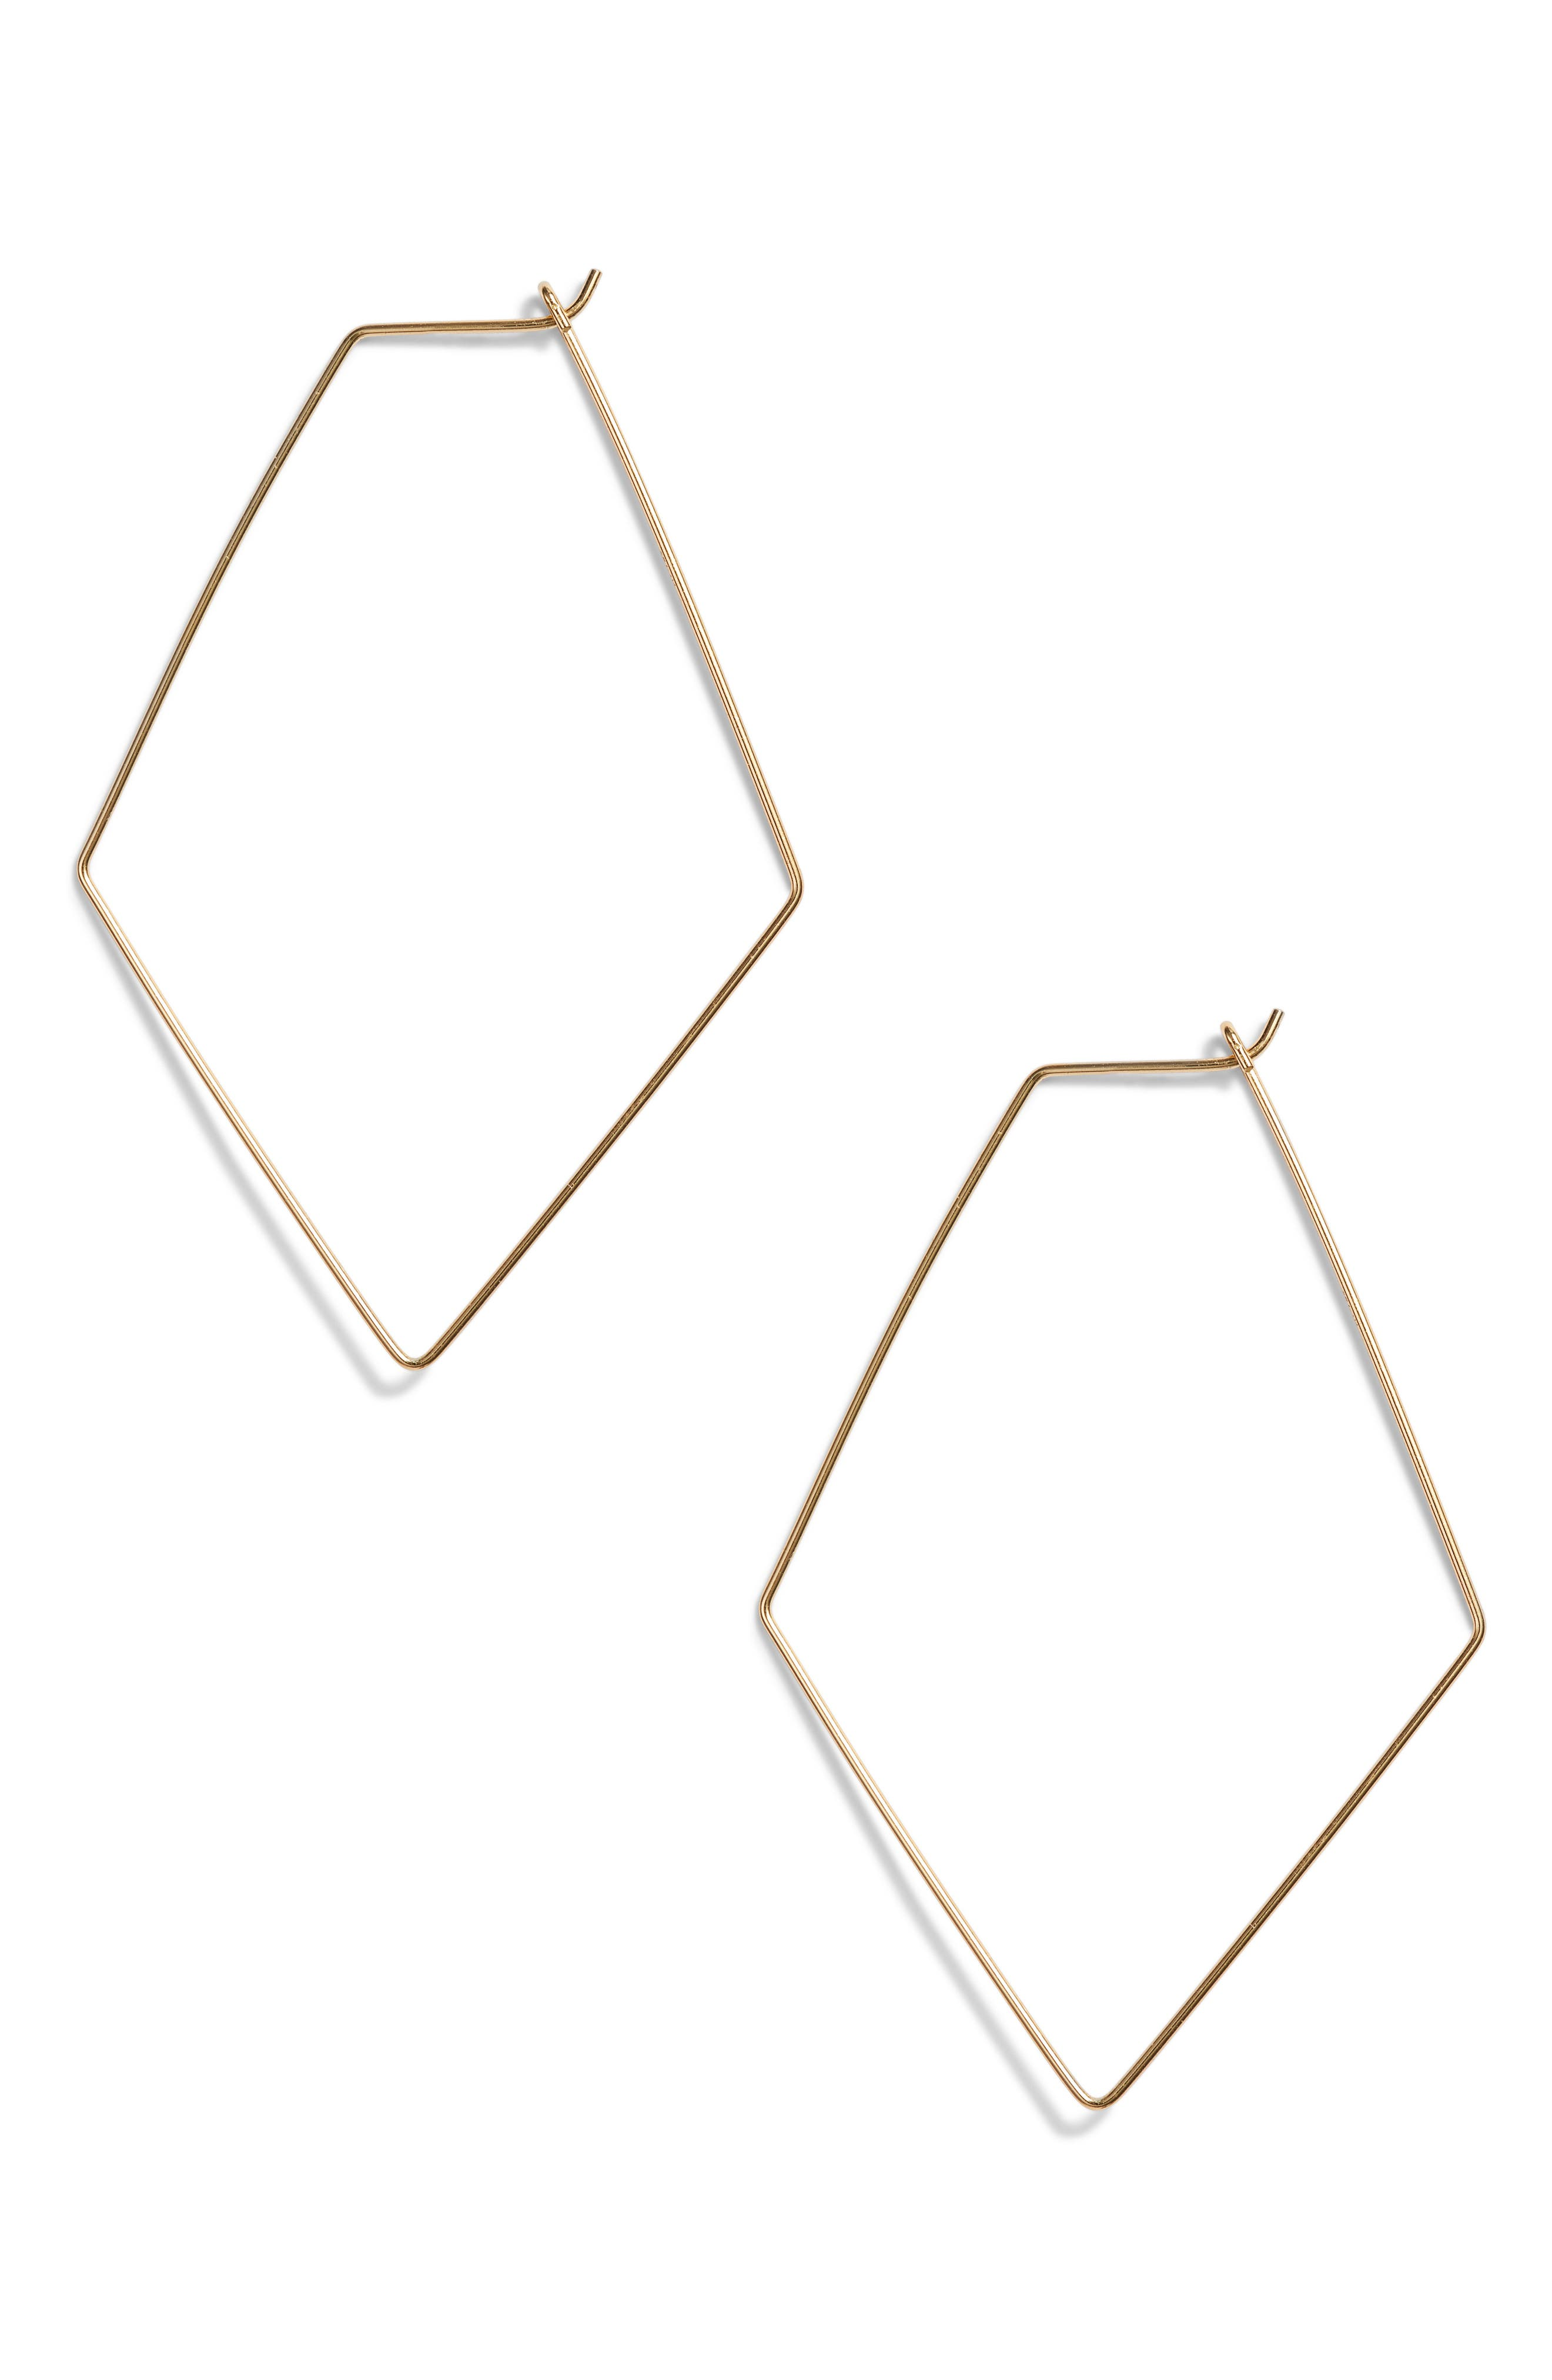 Rhombus Hoop Earrings,                             Main thumbnail 1, color,                             GOLD